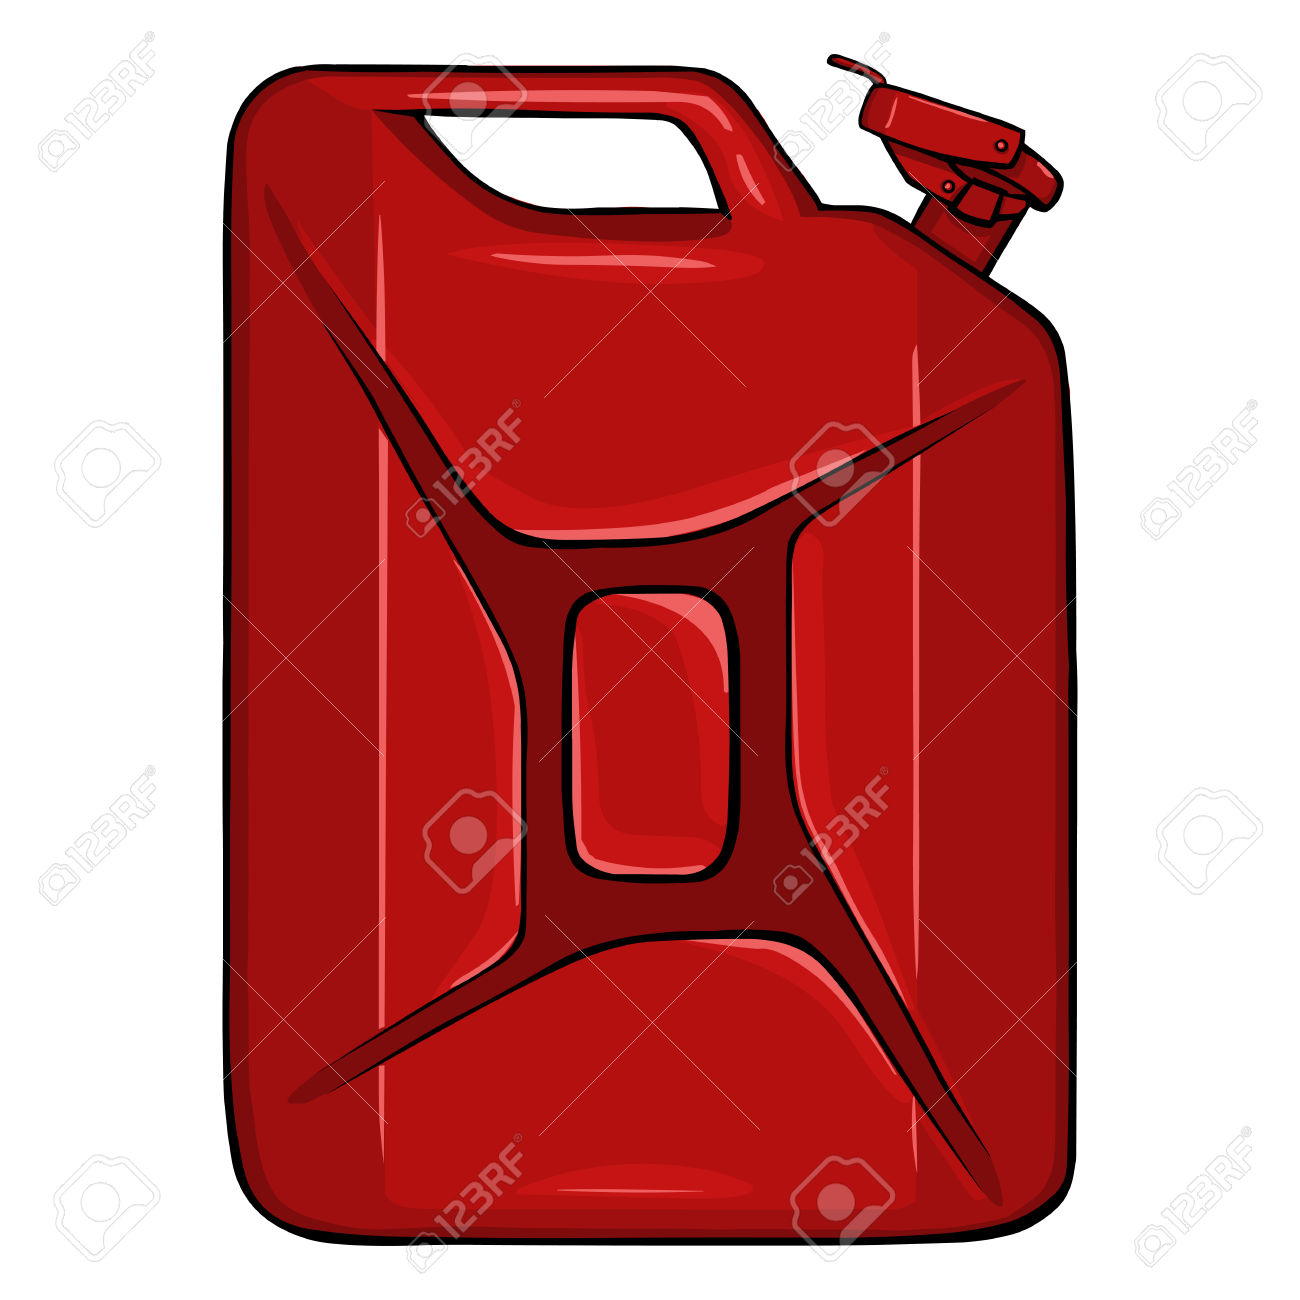 Jerry can clipart #12